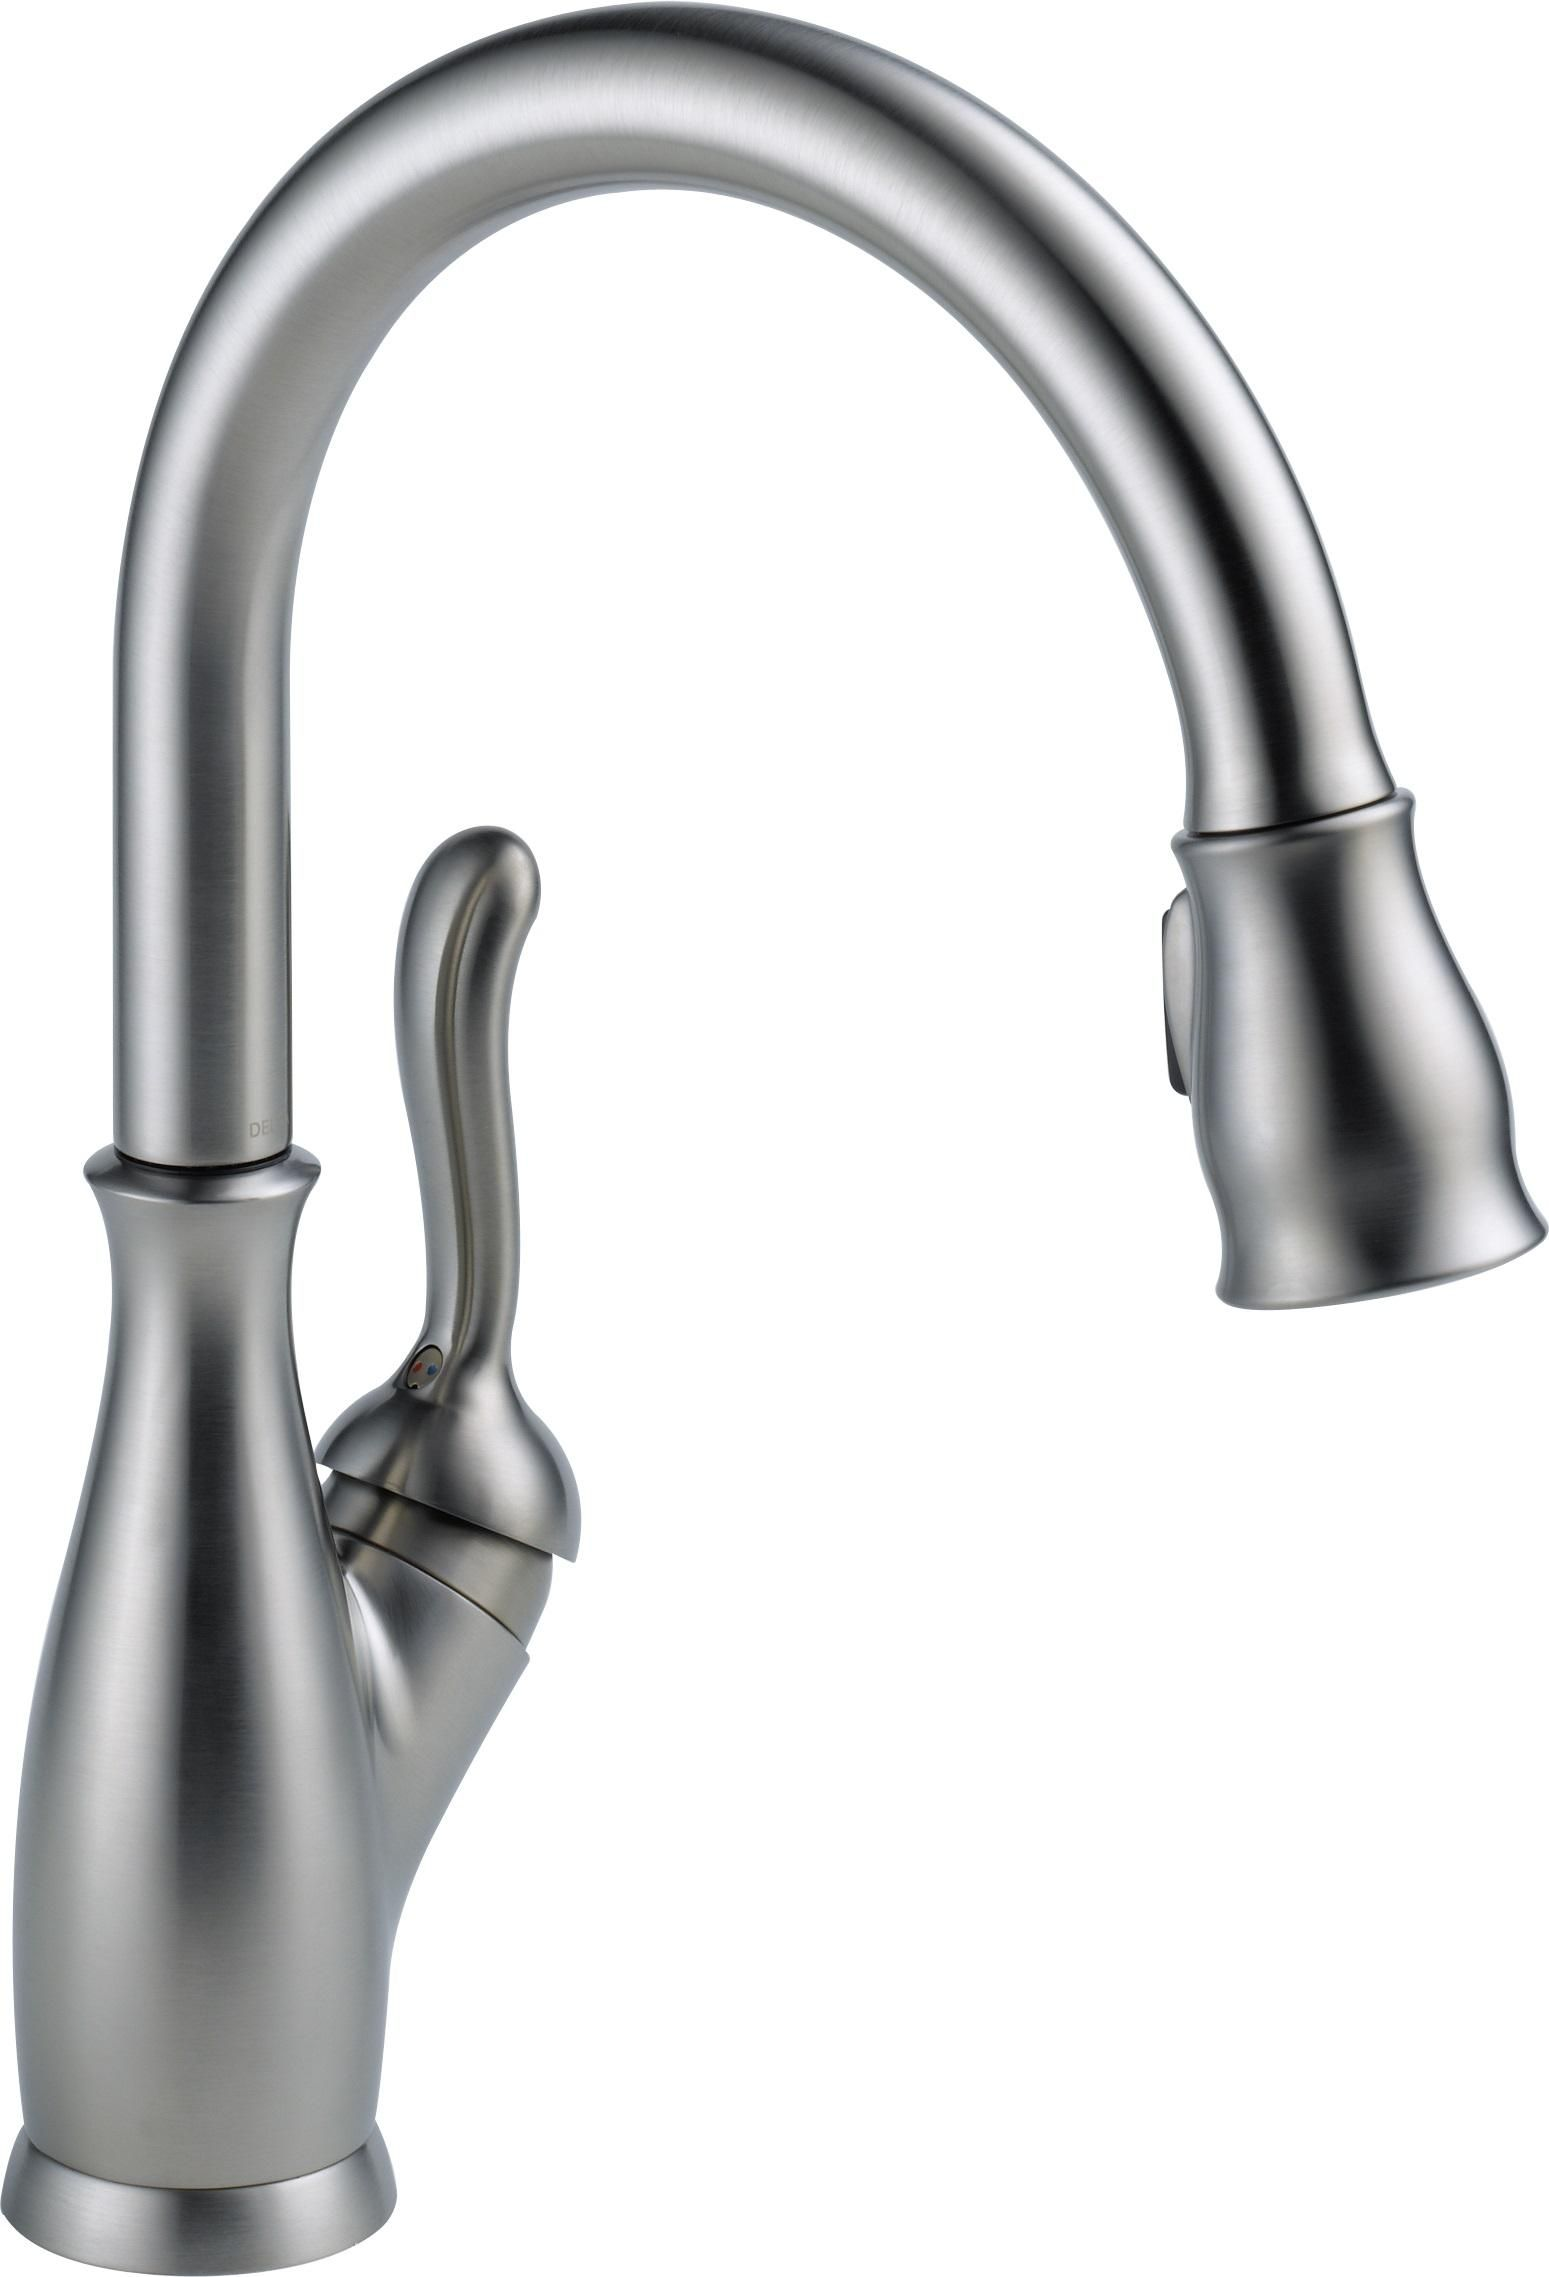 Delta 9178 Ar Dst Leland Single Handle Pull Down Kitchen Faucet Arctic Stainless Touch On Kitchen Best Kitchen Faucets Kitchen Faucet Reviews Kitchen Faucet